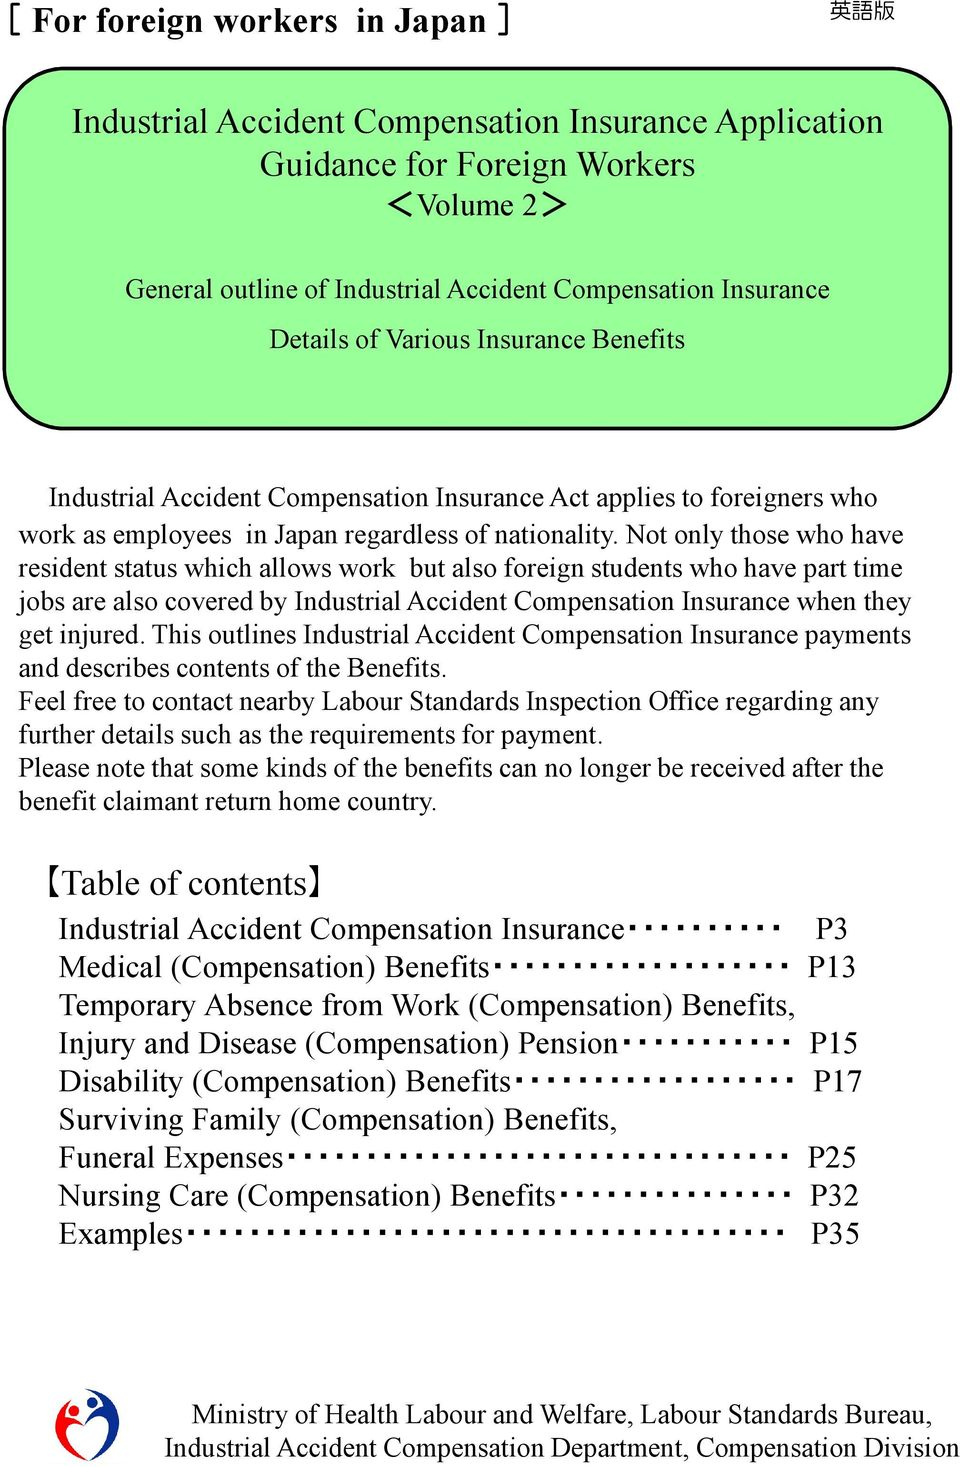 Not only those who have resident status which allows work but also foreign students who have part time jobs are also covered by Industrial Accident Compensation Insurance when they get injured.